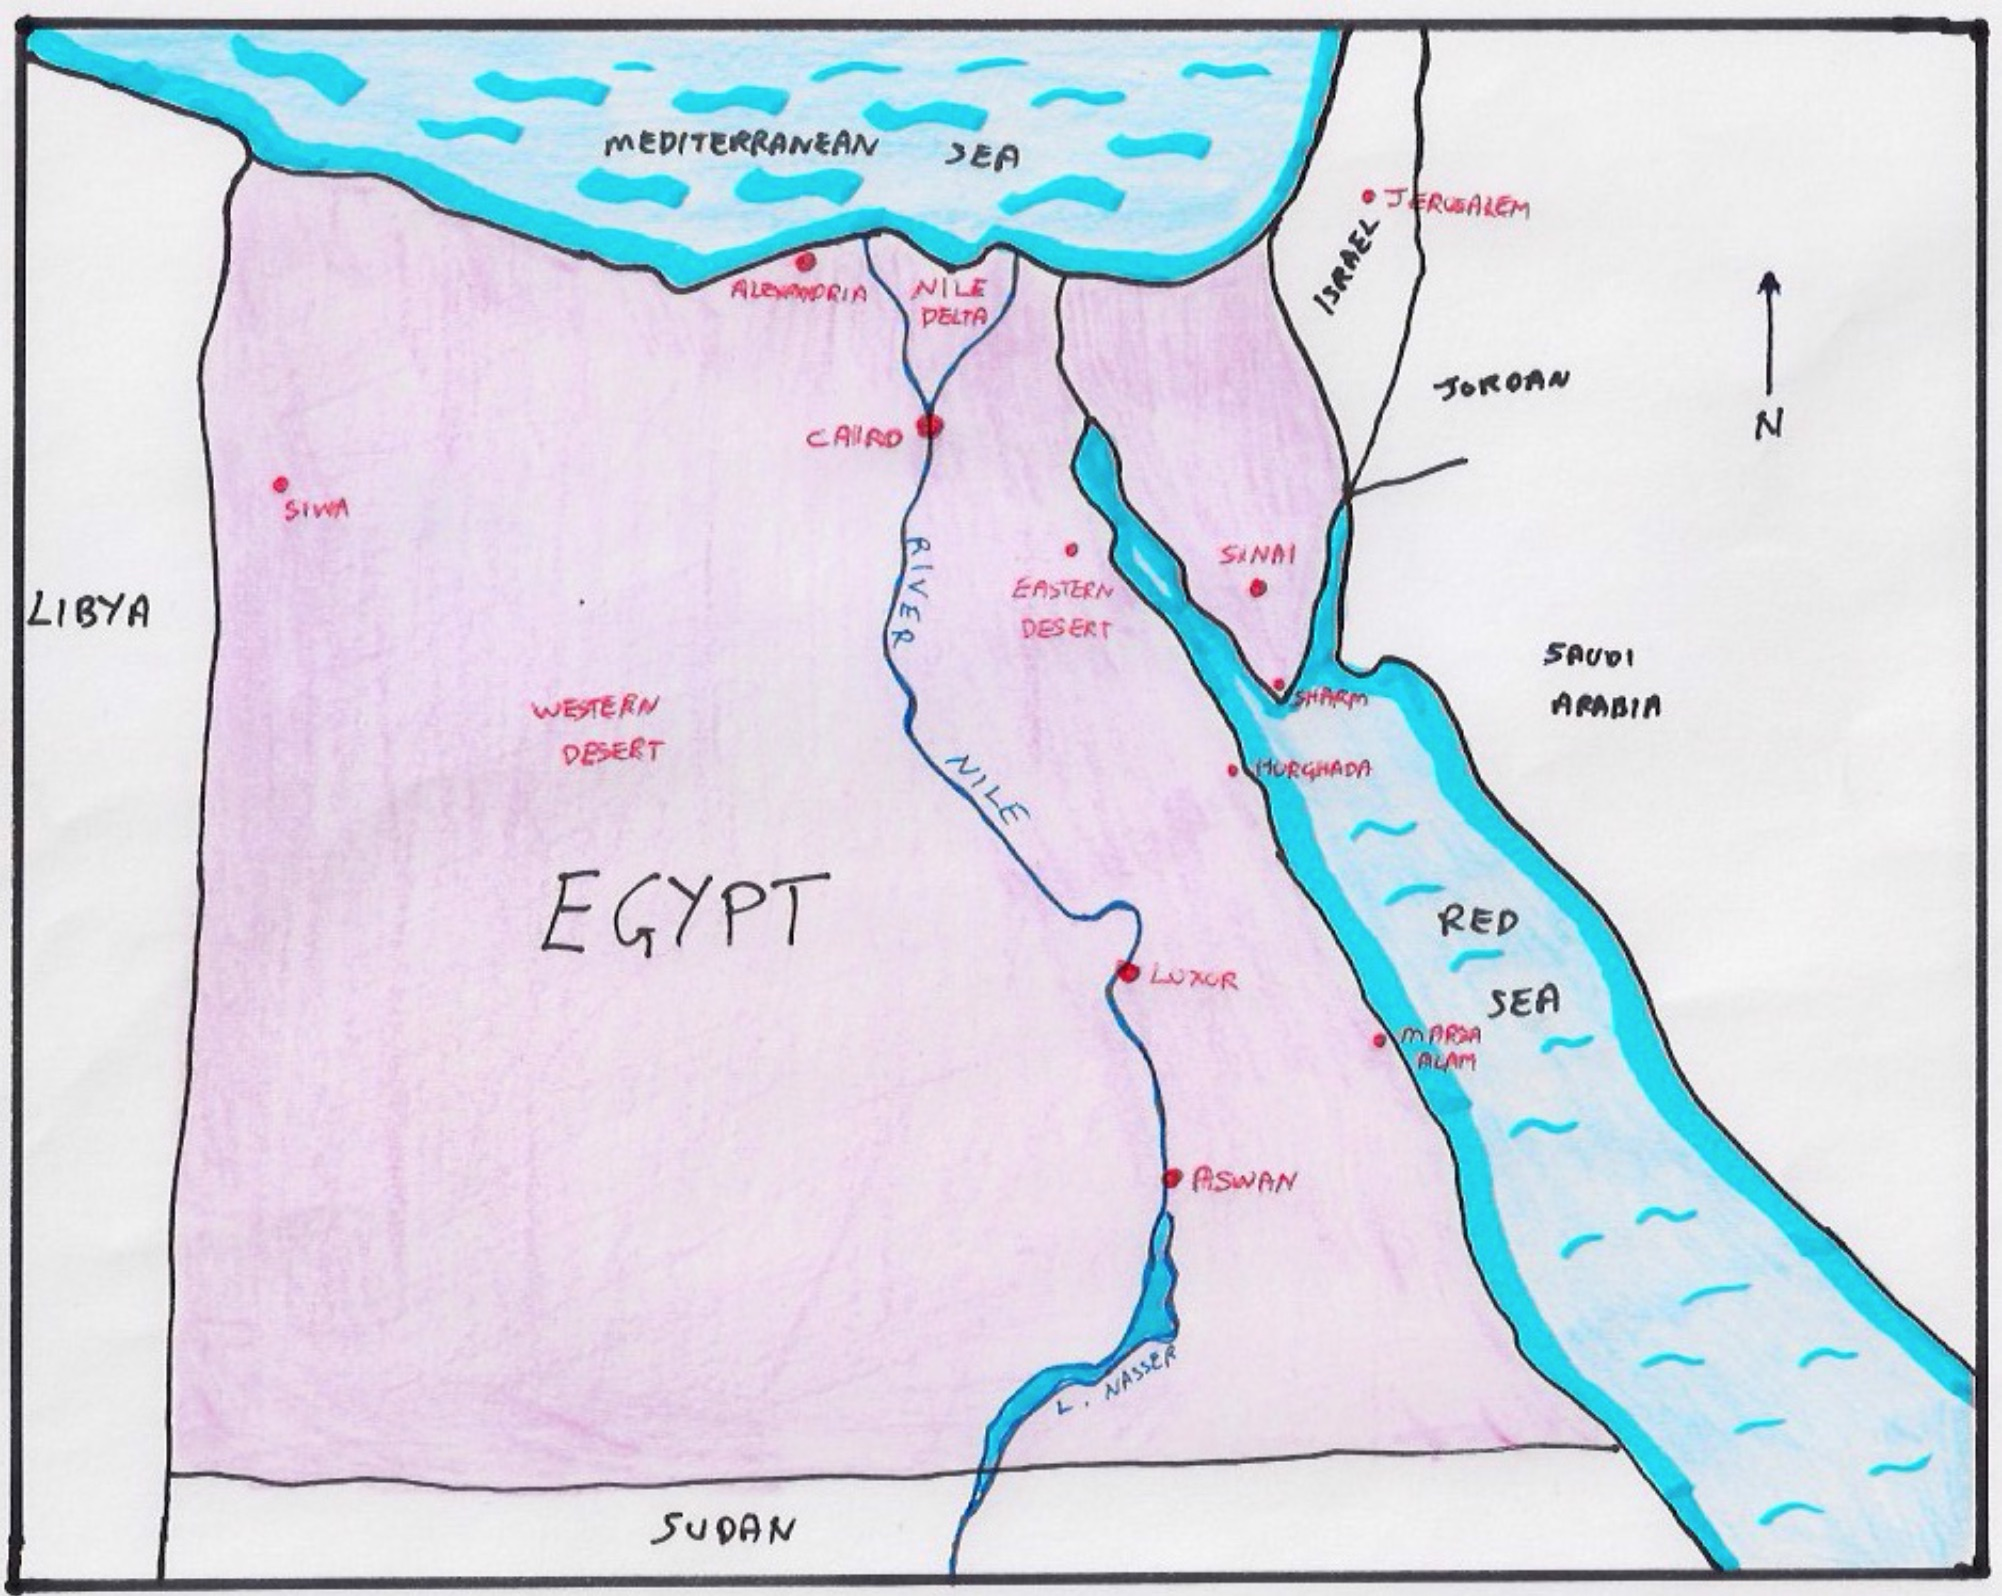 EGYPT Nile River Connections - Map of egypt mountains